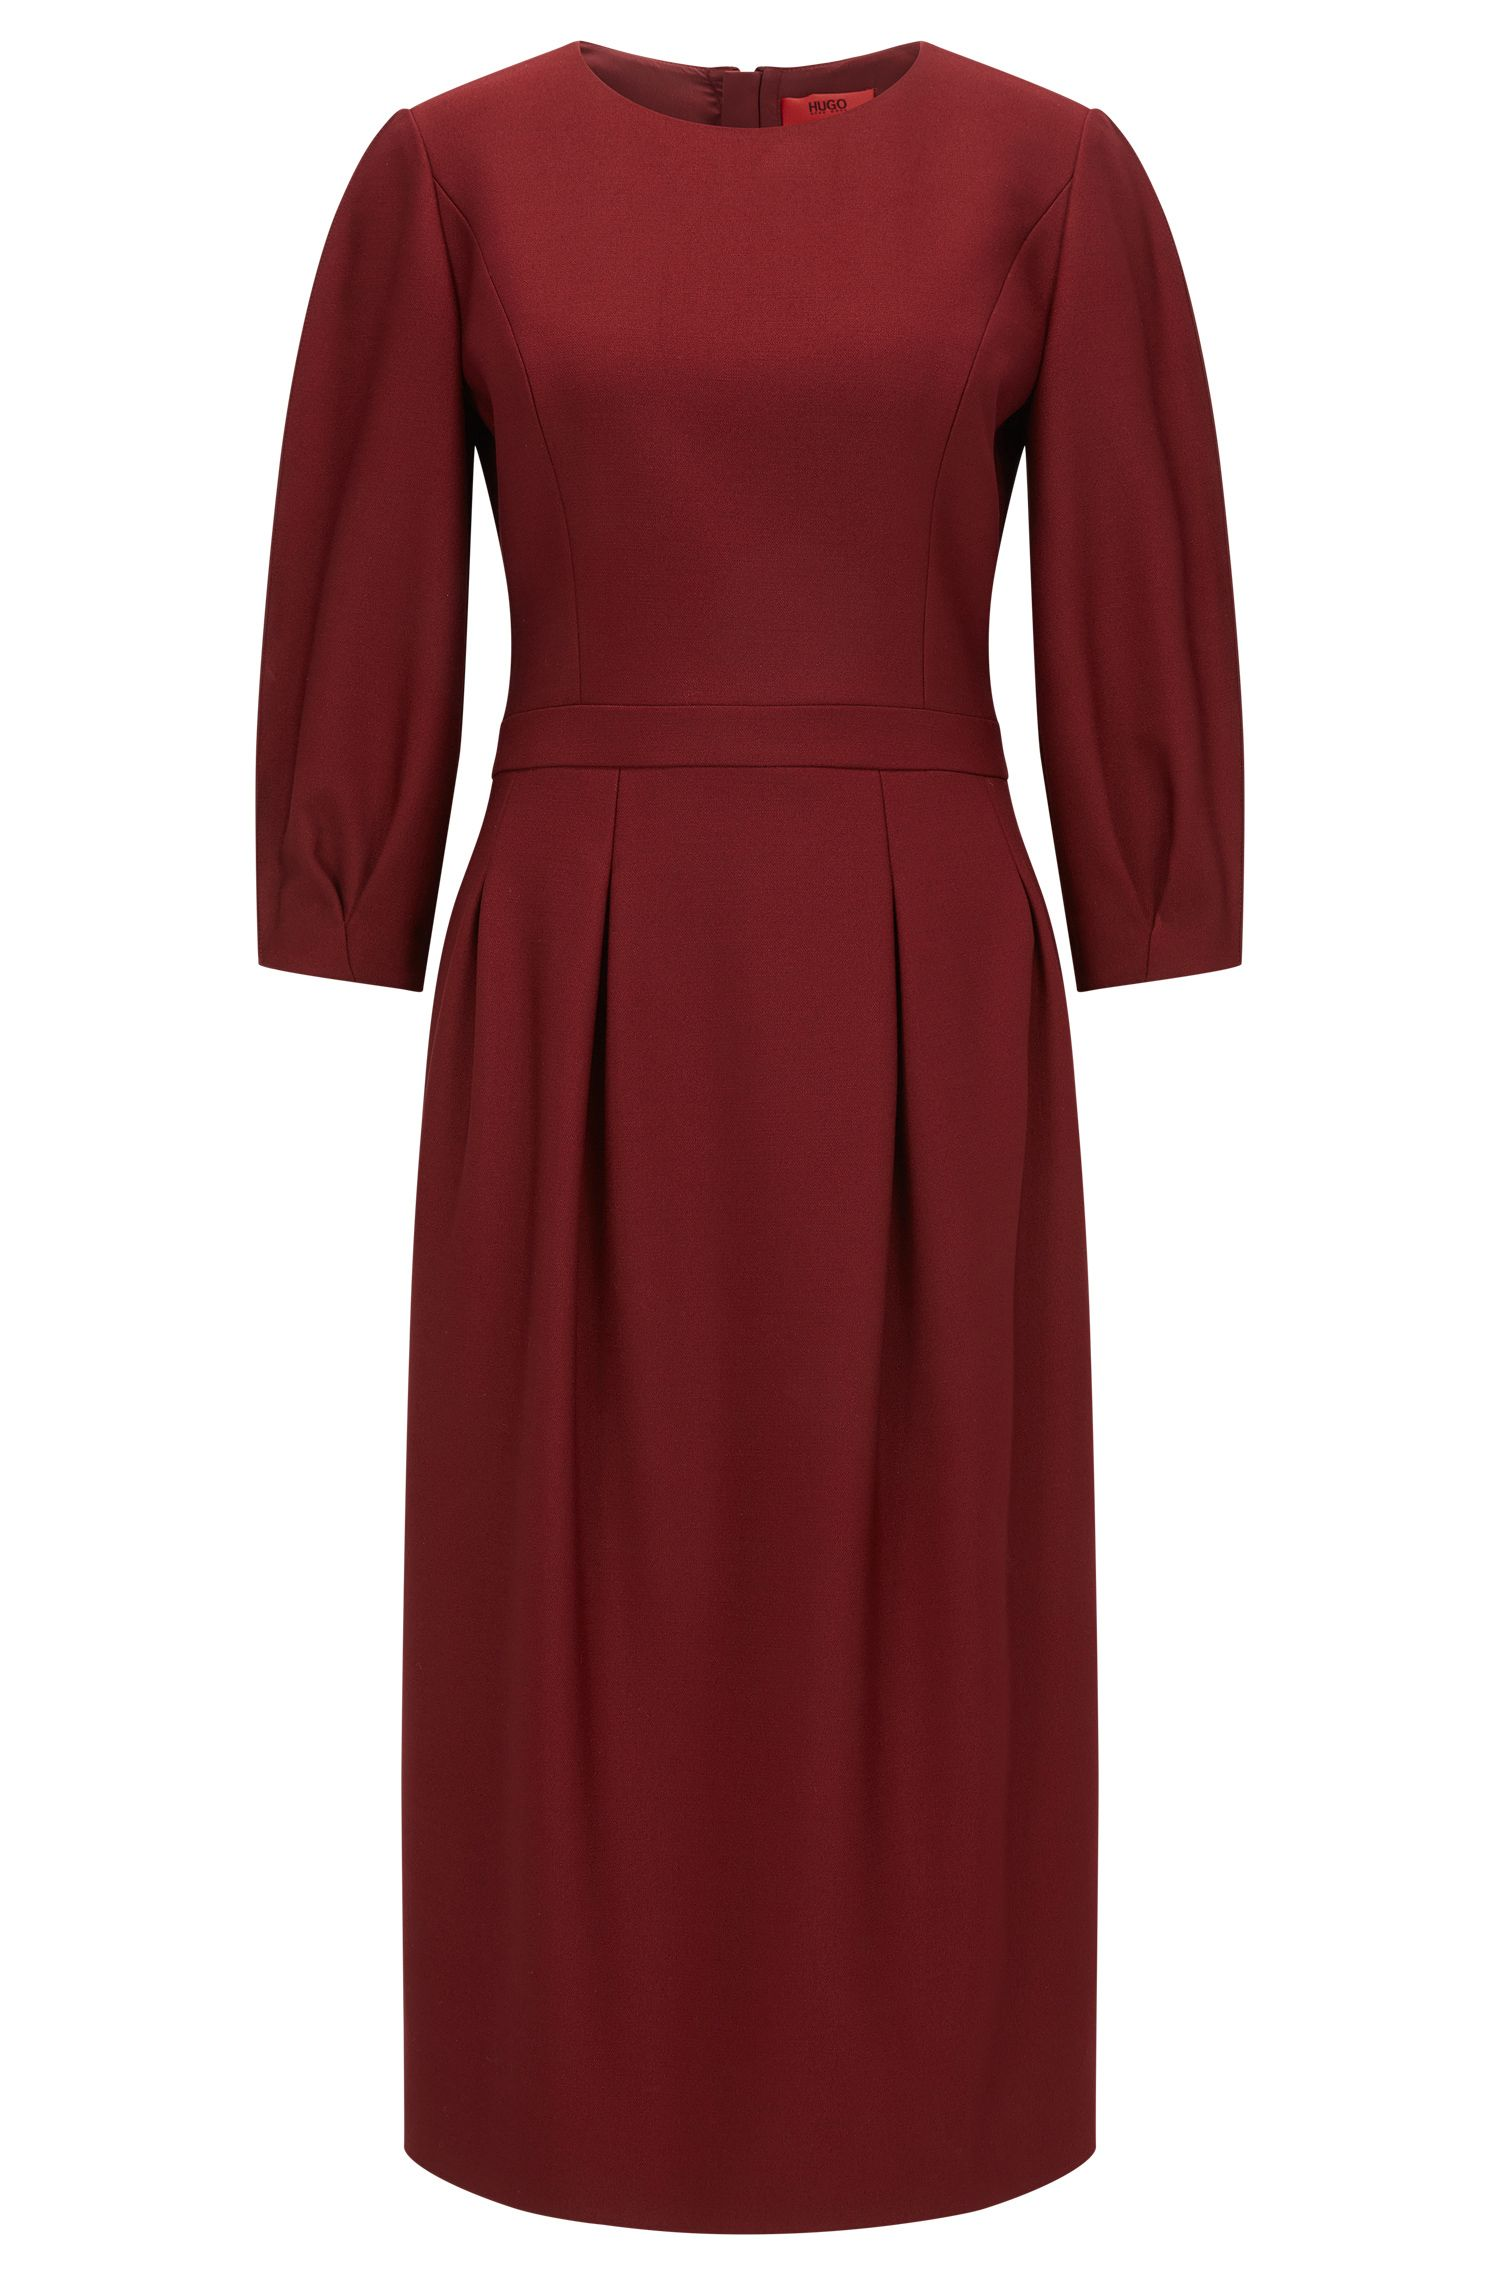 Crew-neck dress in soft double-faced fabric